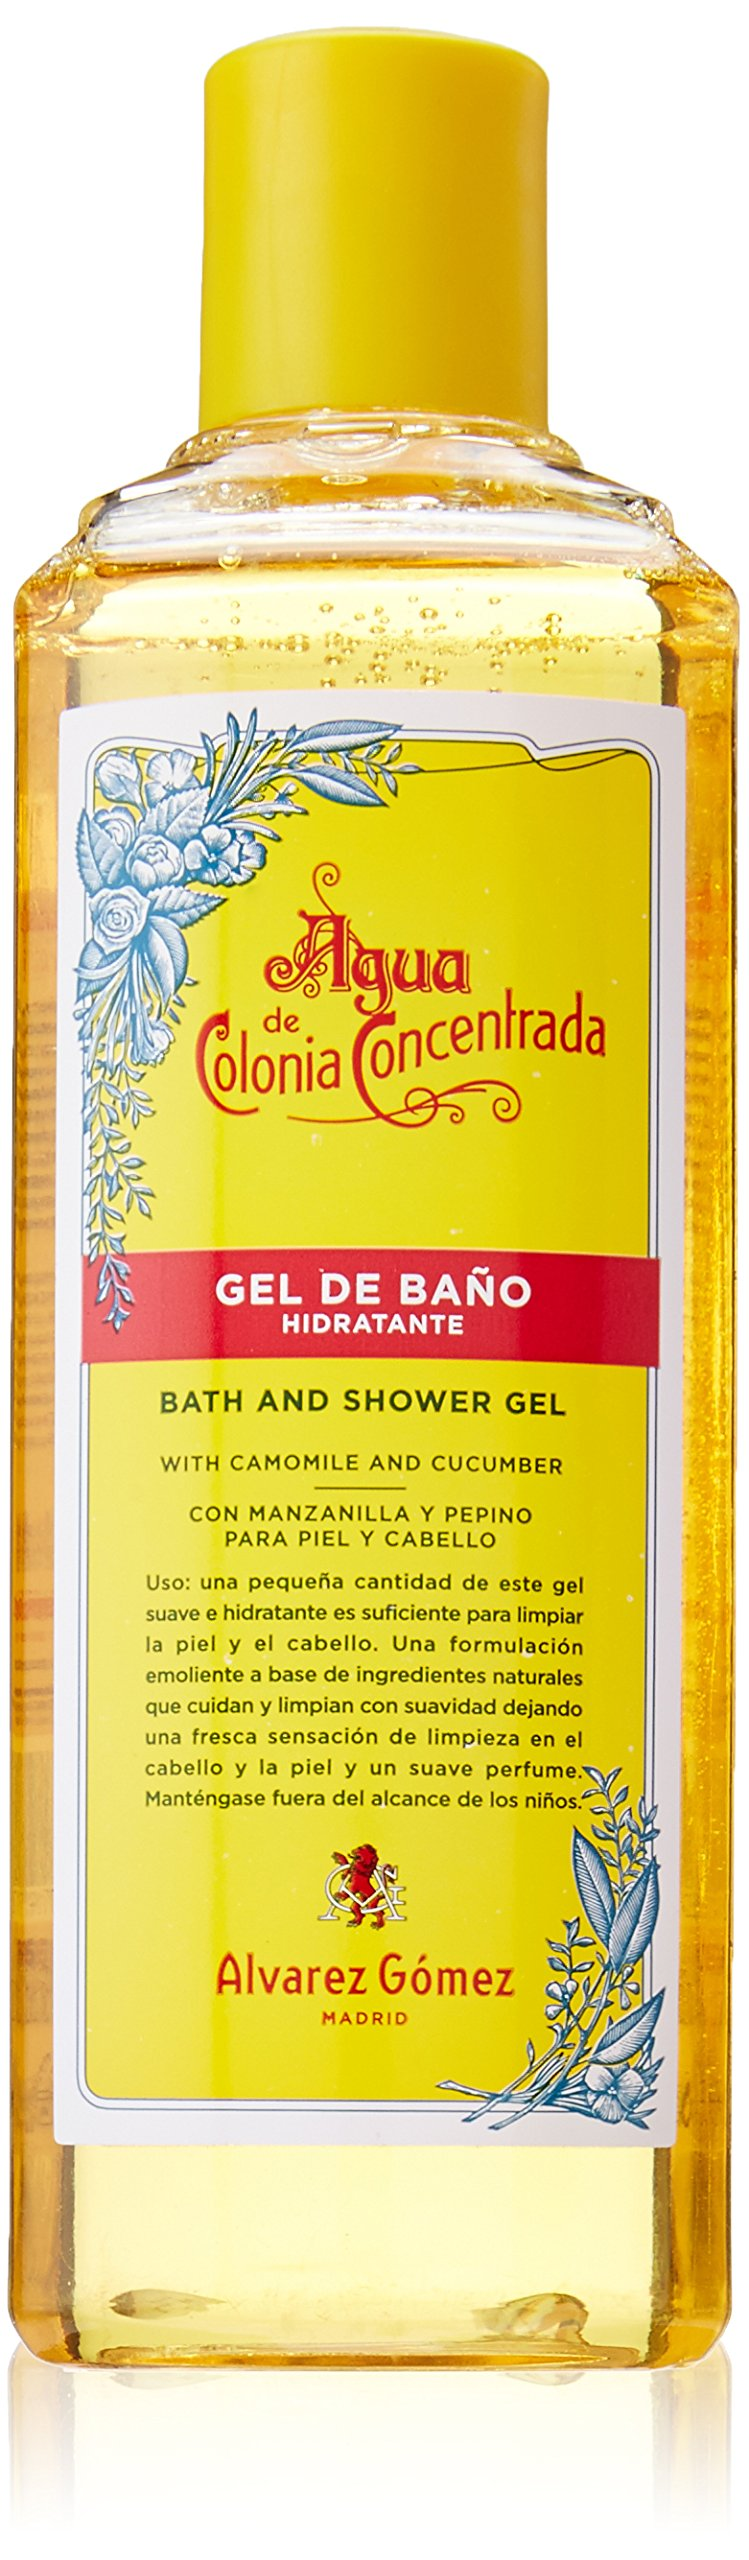 Alvarez Gomez Agua De Colonia Concentrate for Men Bath and Shower Gel, 10.5 Ounce